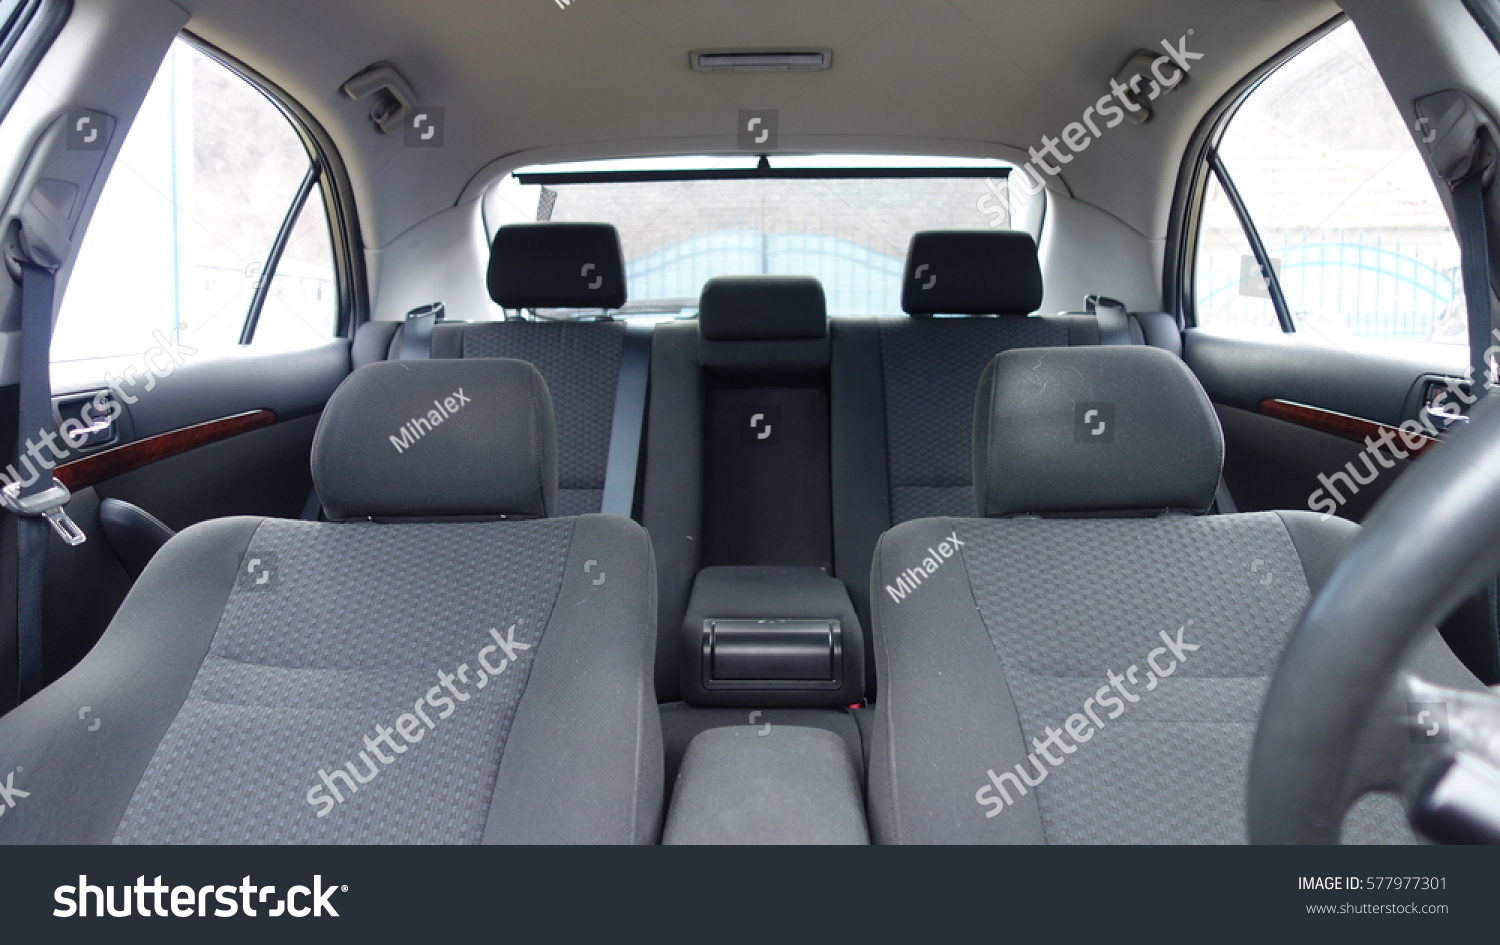 Tremendous Inside Car Interior Front Back Seats Stock Photo Edit Now Gmtry Best Dining Table And Chair Ideas Images Gmtryco